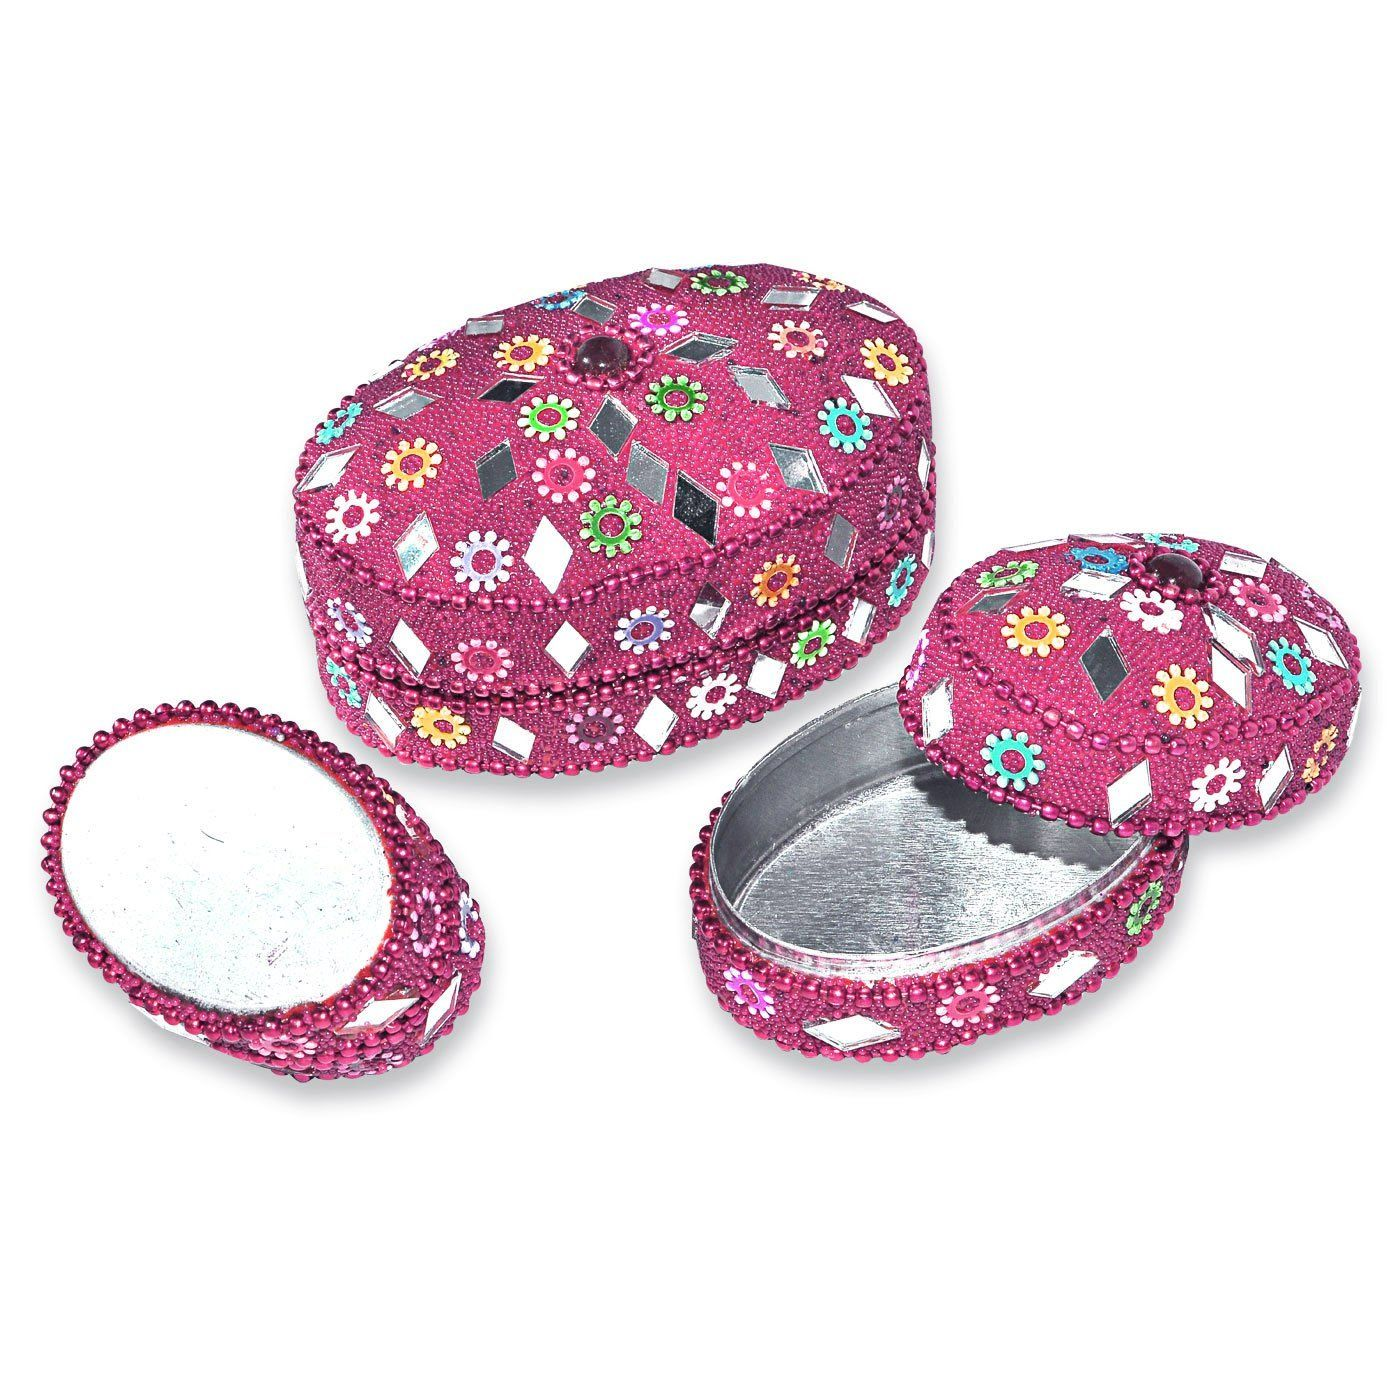 Decorative Boxes Uk Pink Oval Shape Jewelry Box Set Of 3 Amazoncouk Kitchen & Home